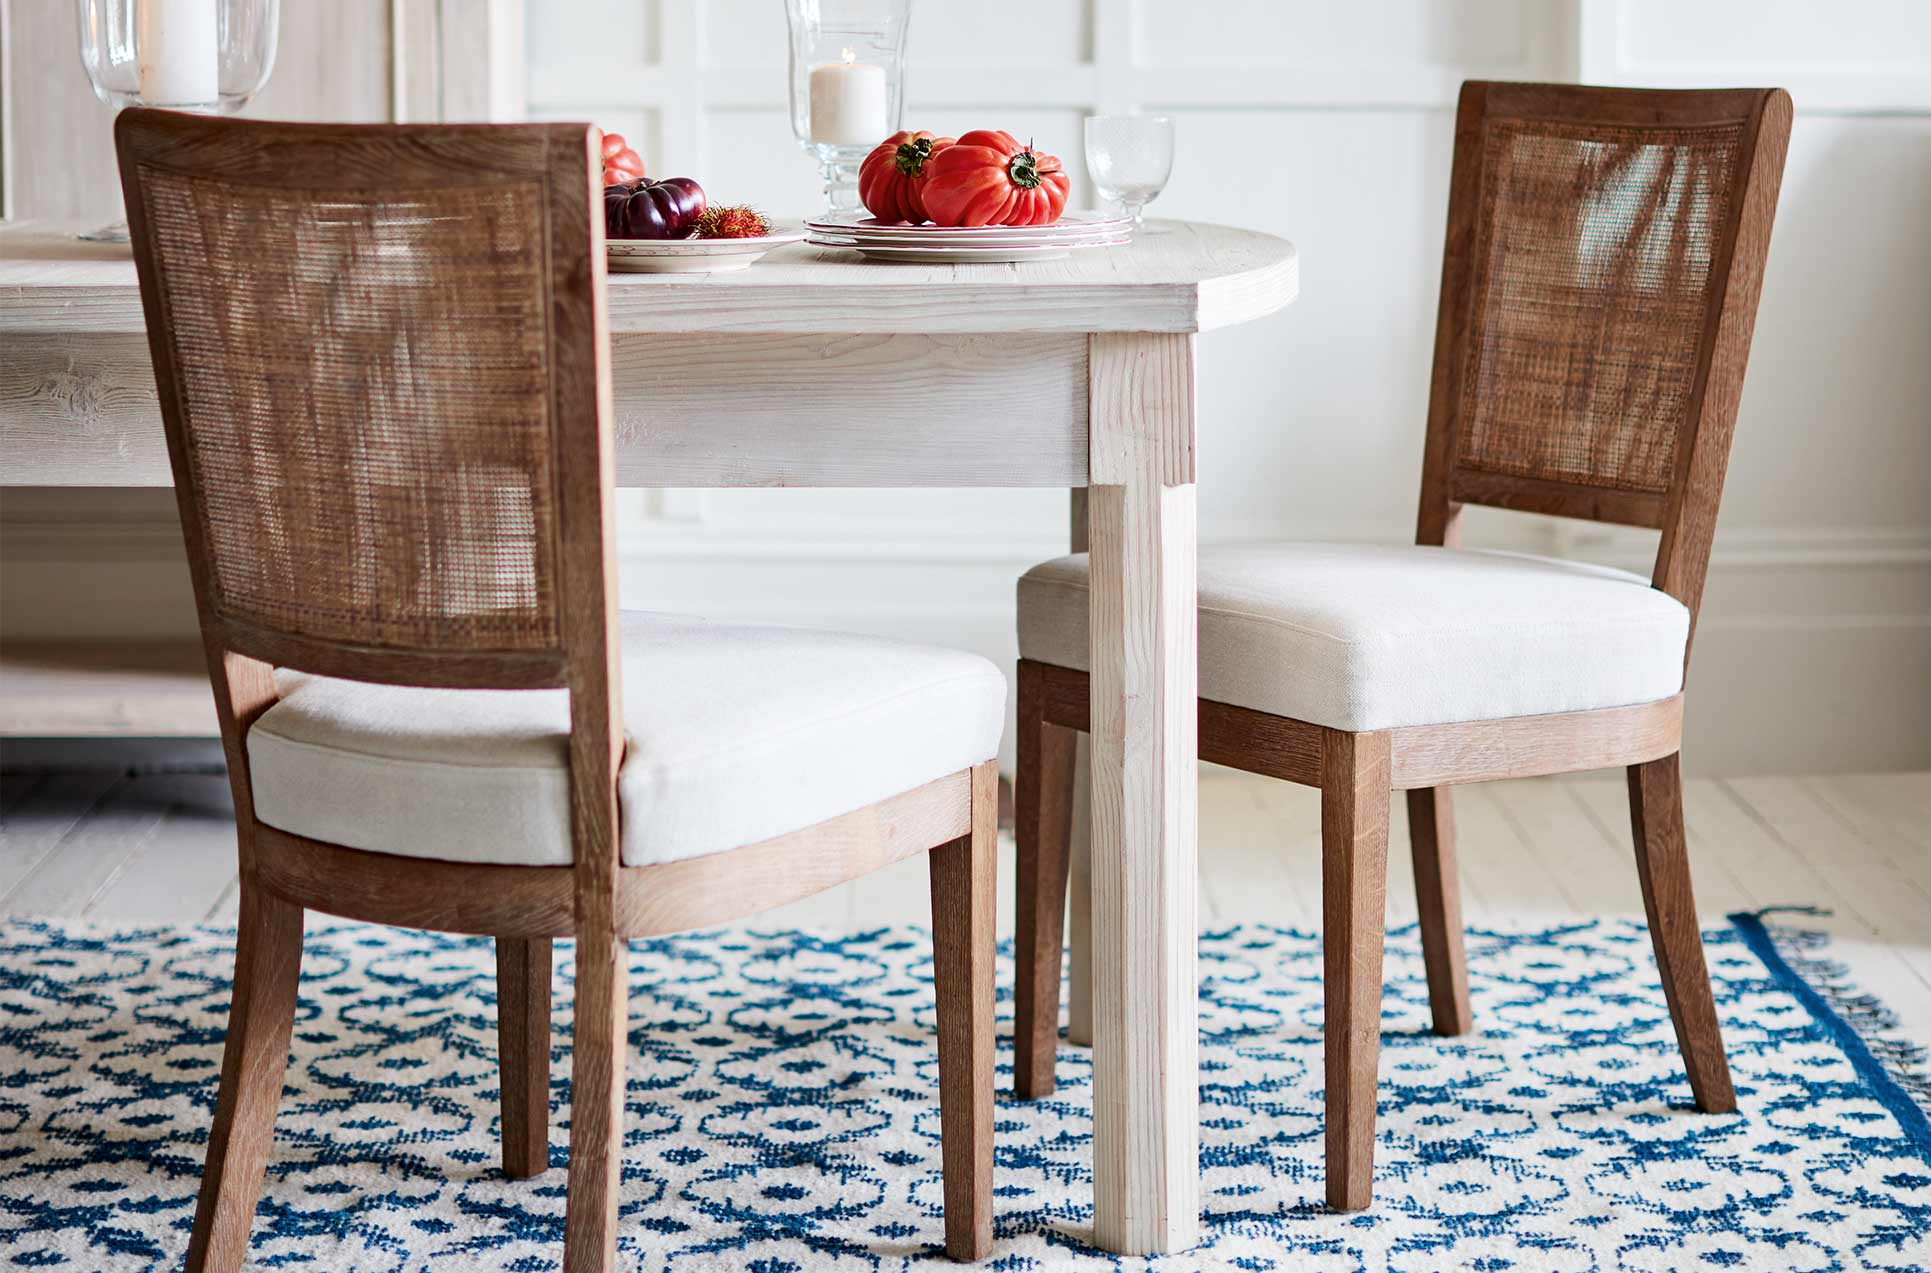 Rattan dining chairs with a linen seat around a light wooden table